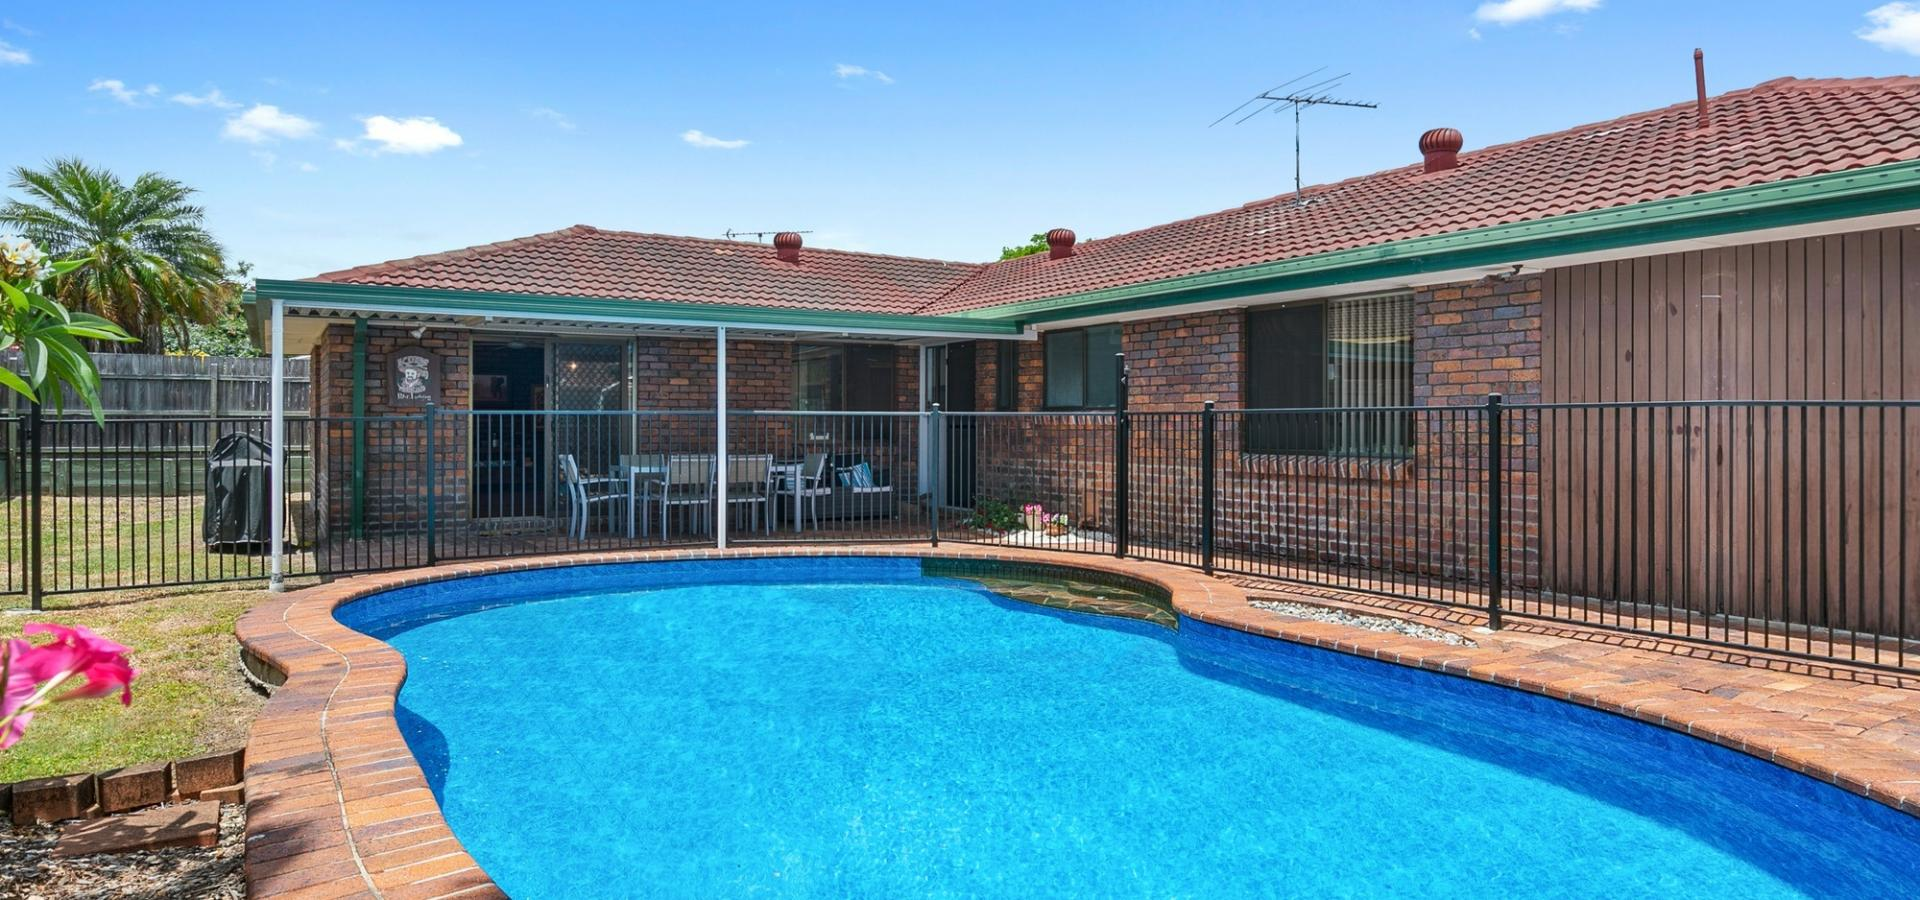 With airconditioning and a swimming pool, you will breeze through Summer